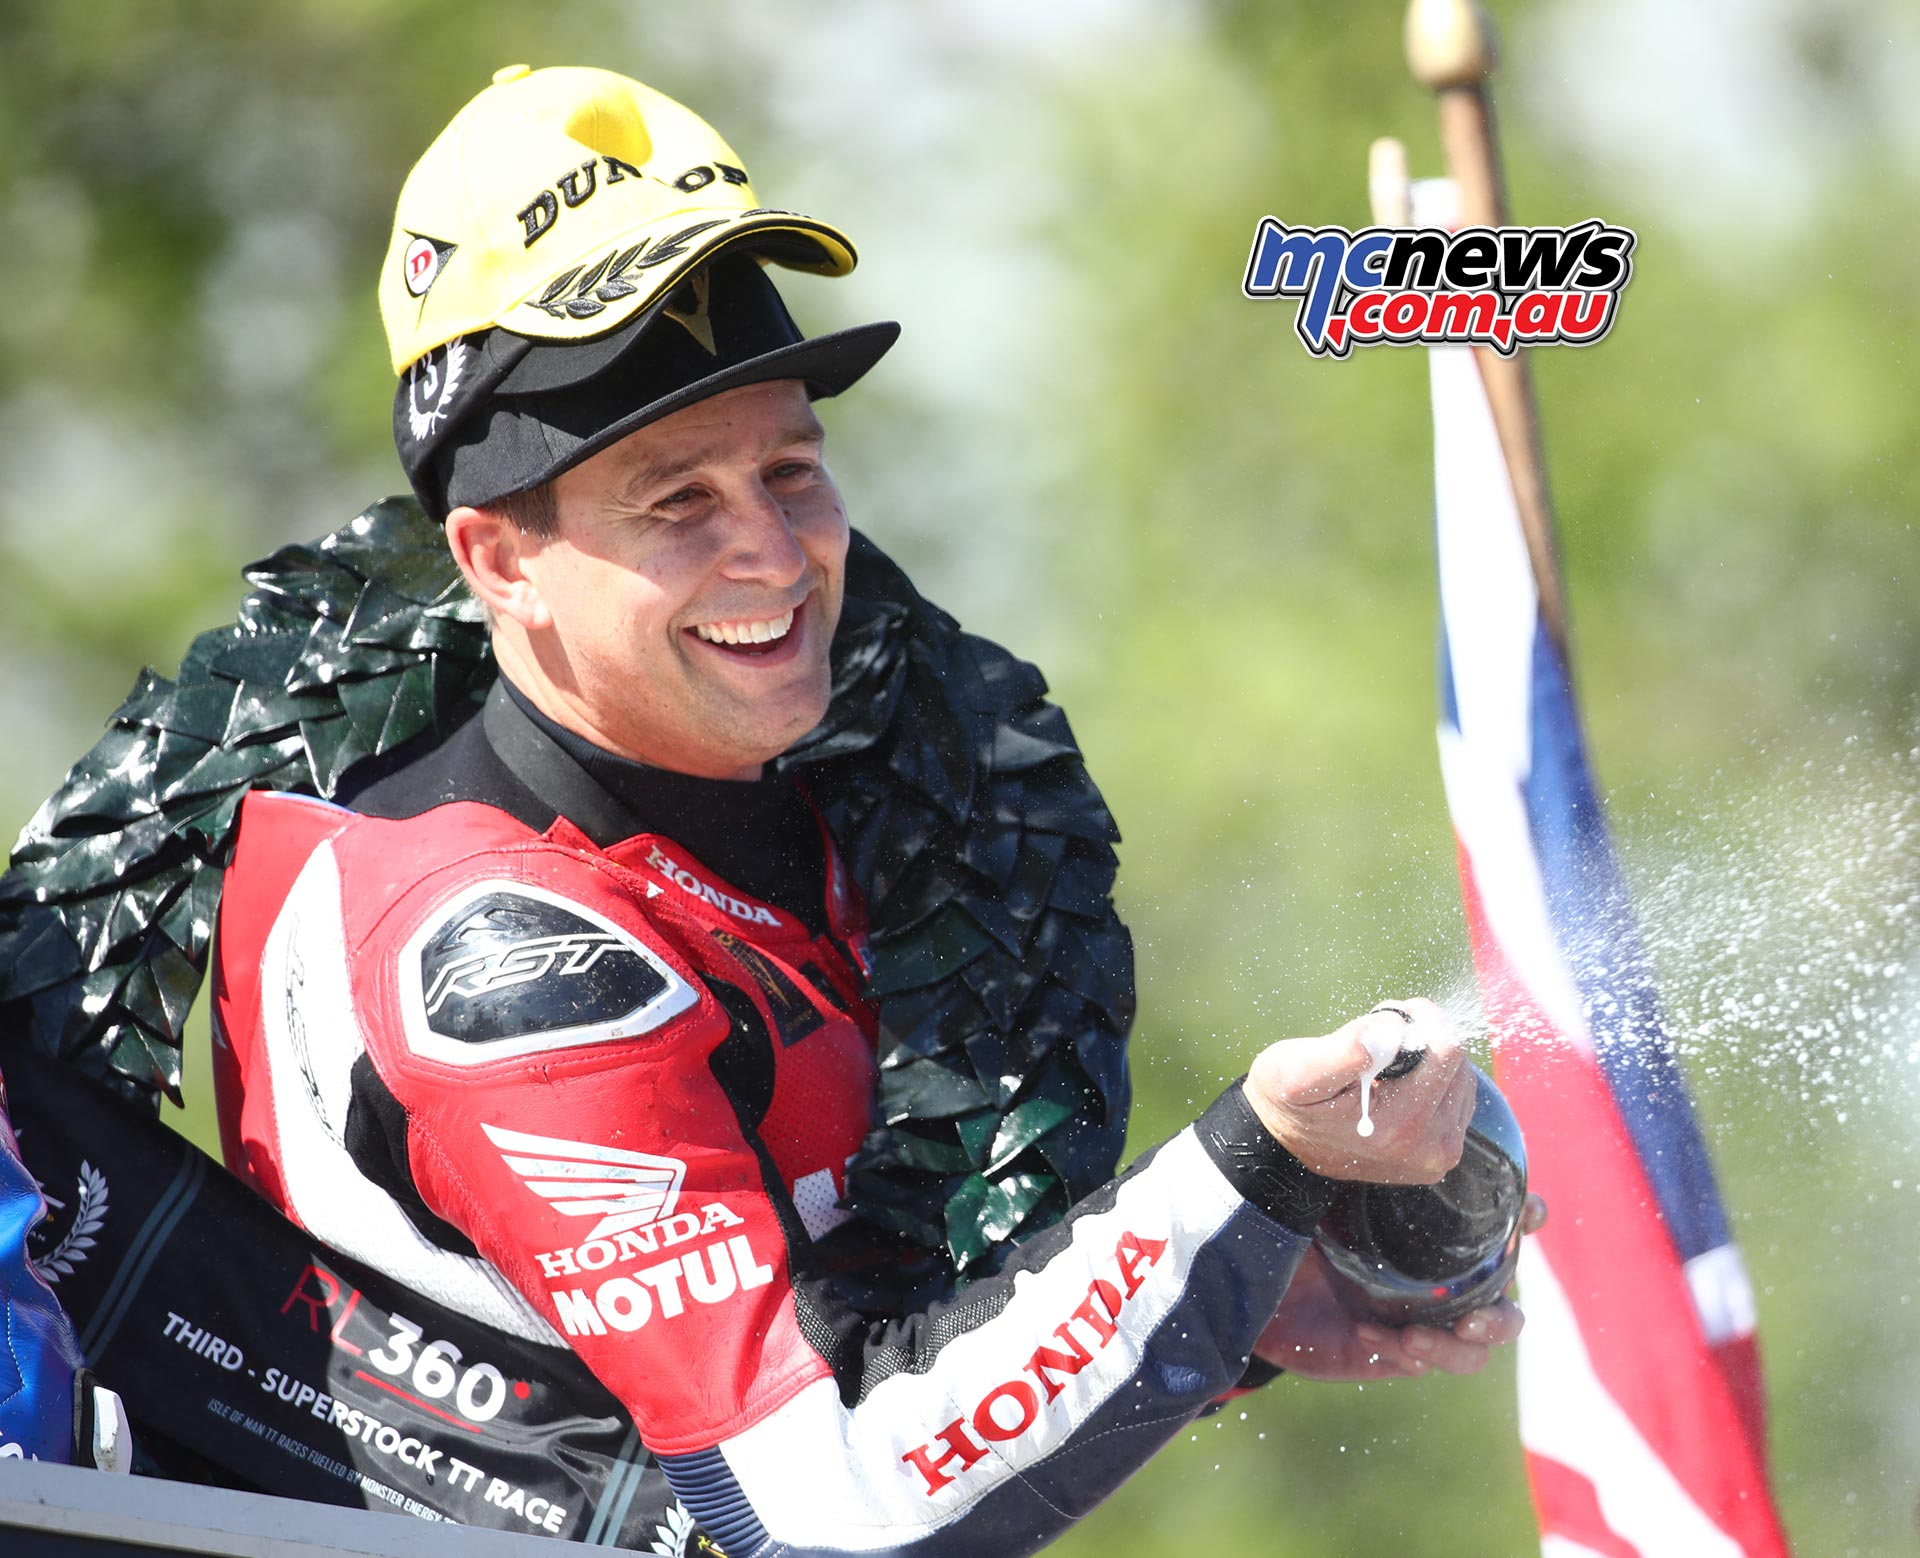 IOMTT David Johnson Supertock Podium HondaImage